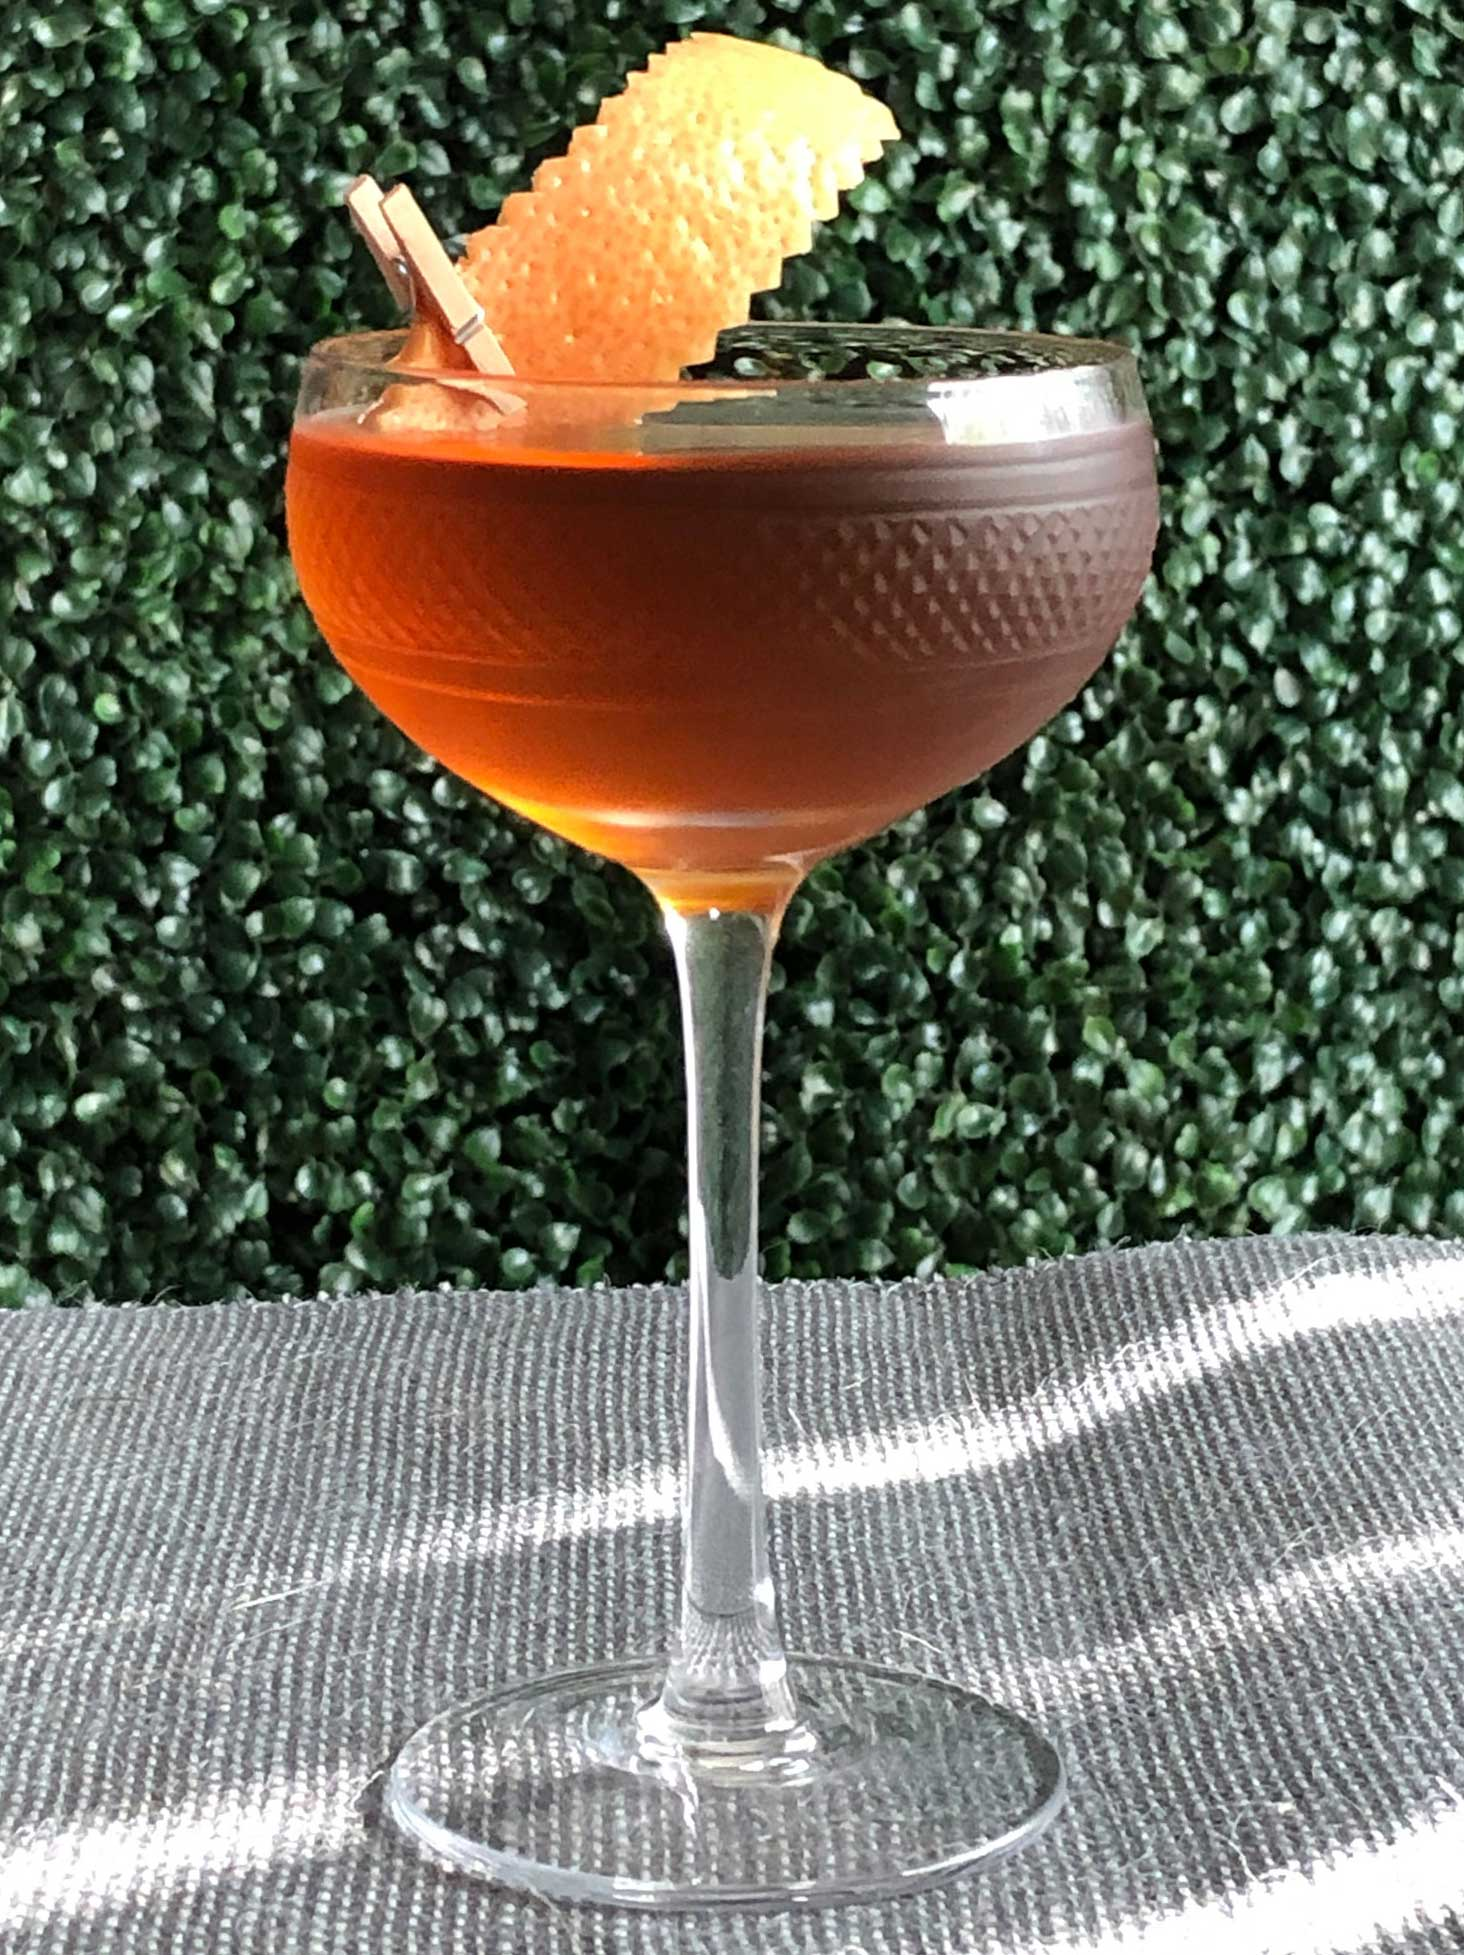 An example of the Diamond in the Rough, the mixed drink (cocktail) featuring Hayman's Old Tom Gin, Bonal Gentiane-Quina, Amaro Alta Verde, and orange bitters; photo by Lee Edwards